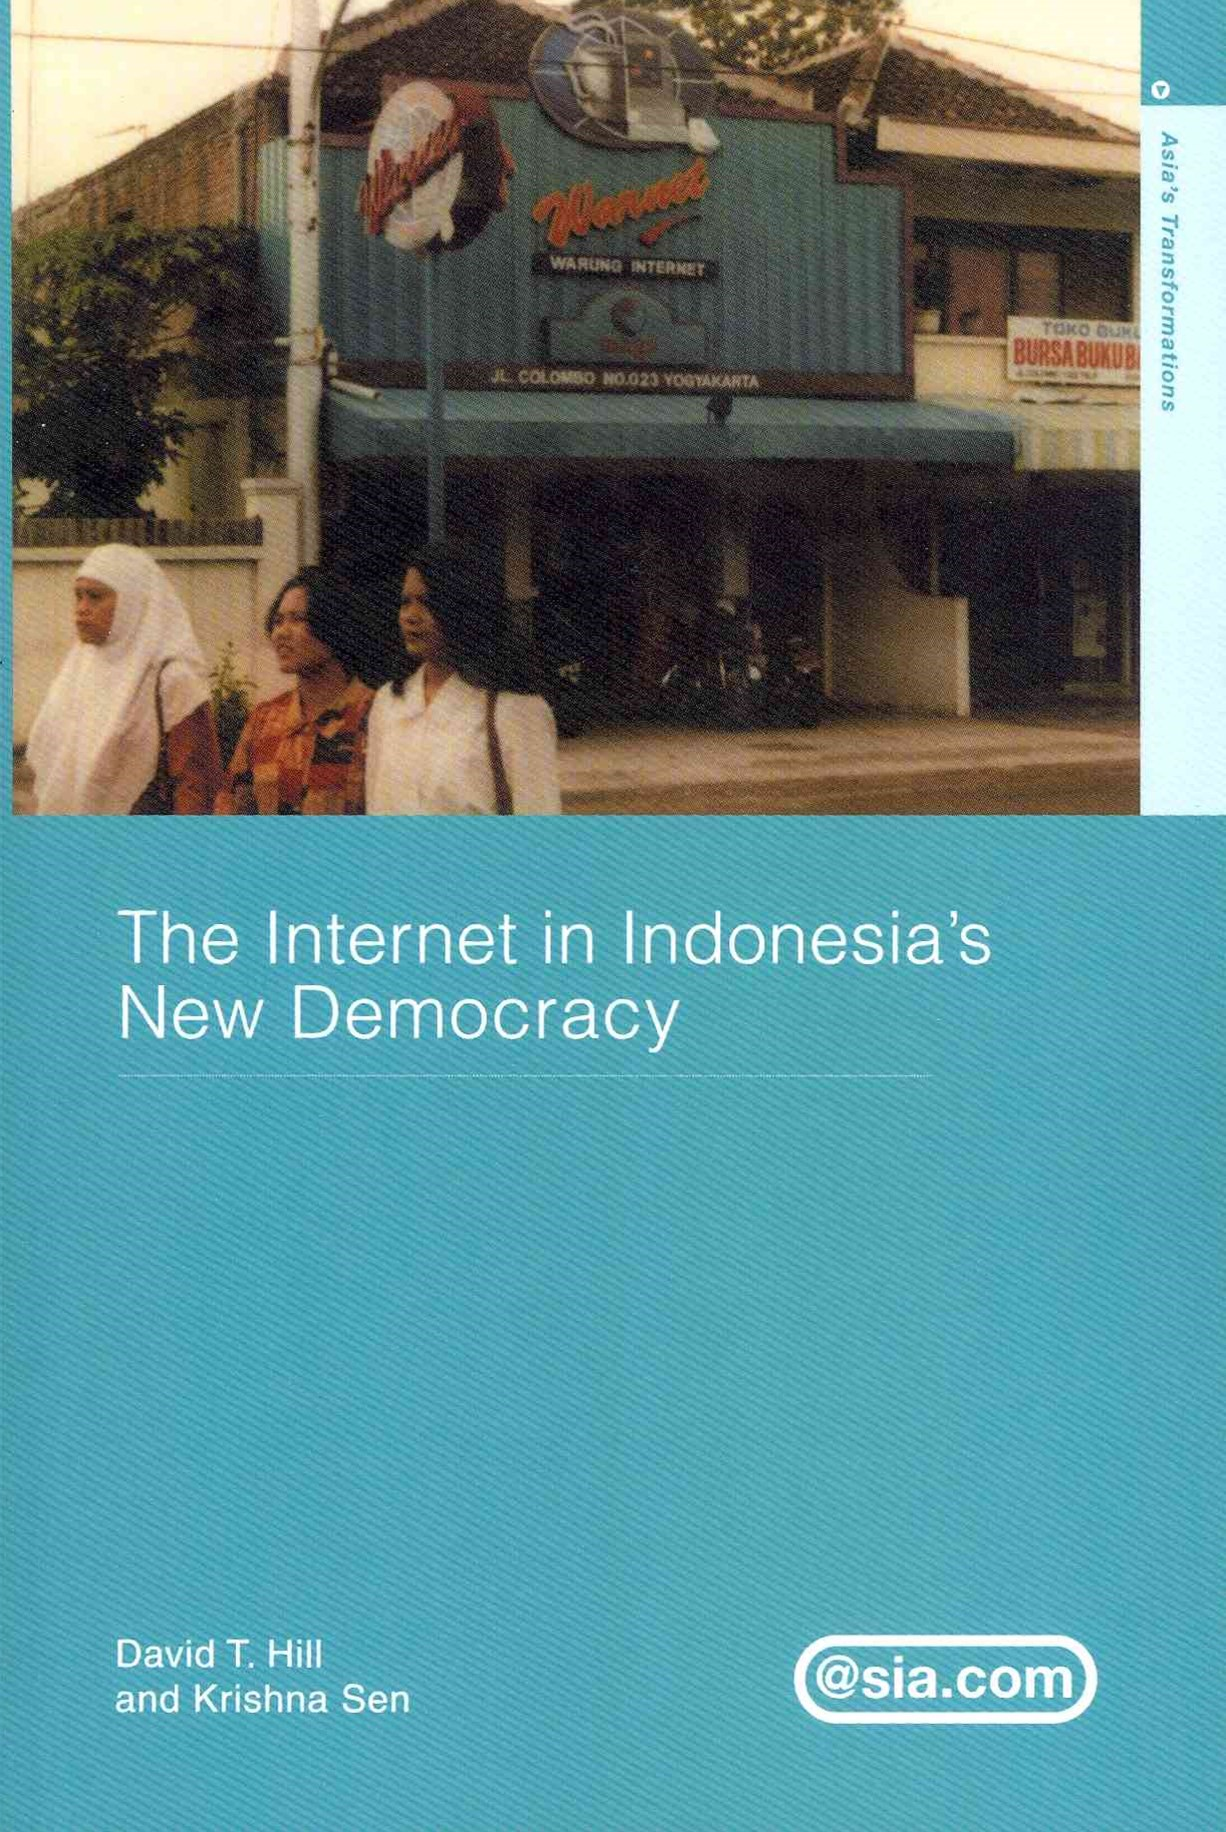 The Internet in Indonesia's New Democracy